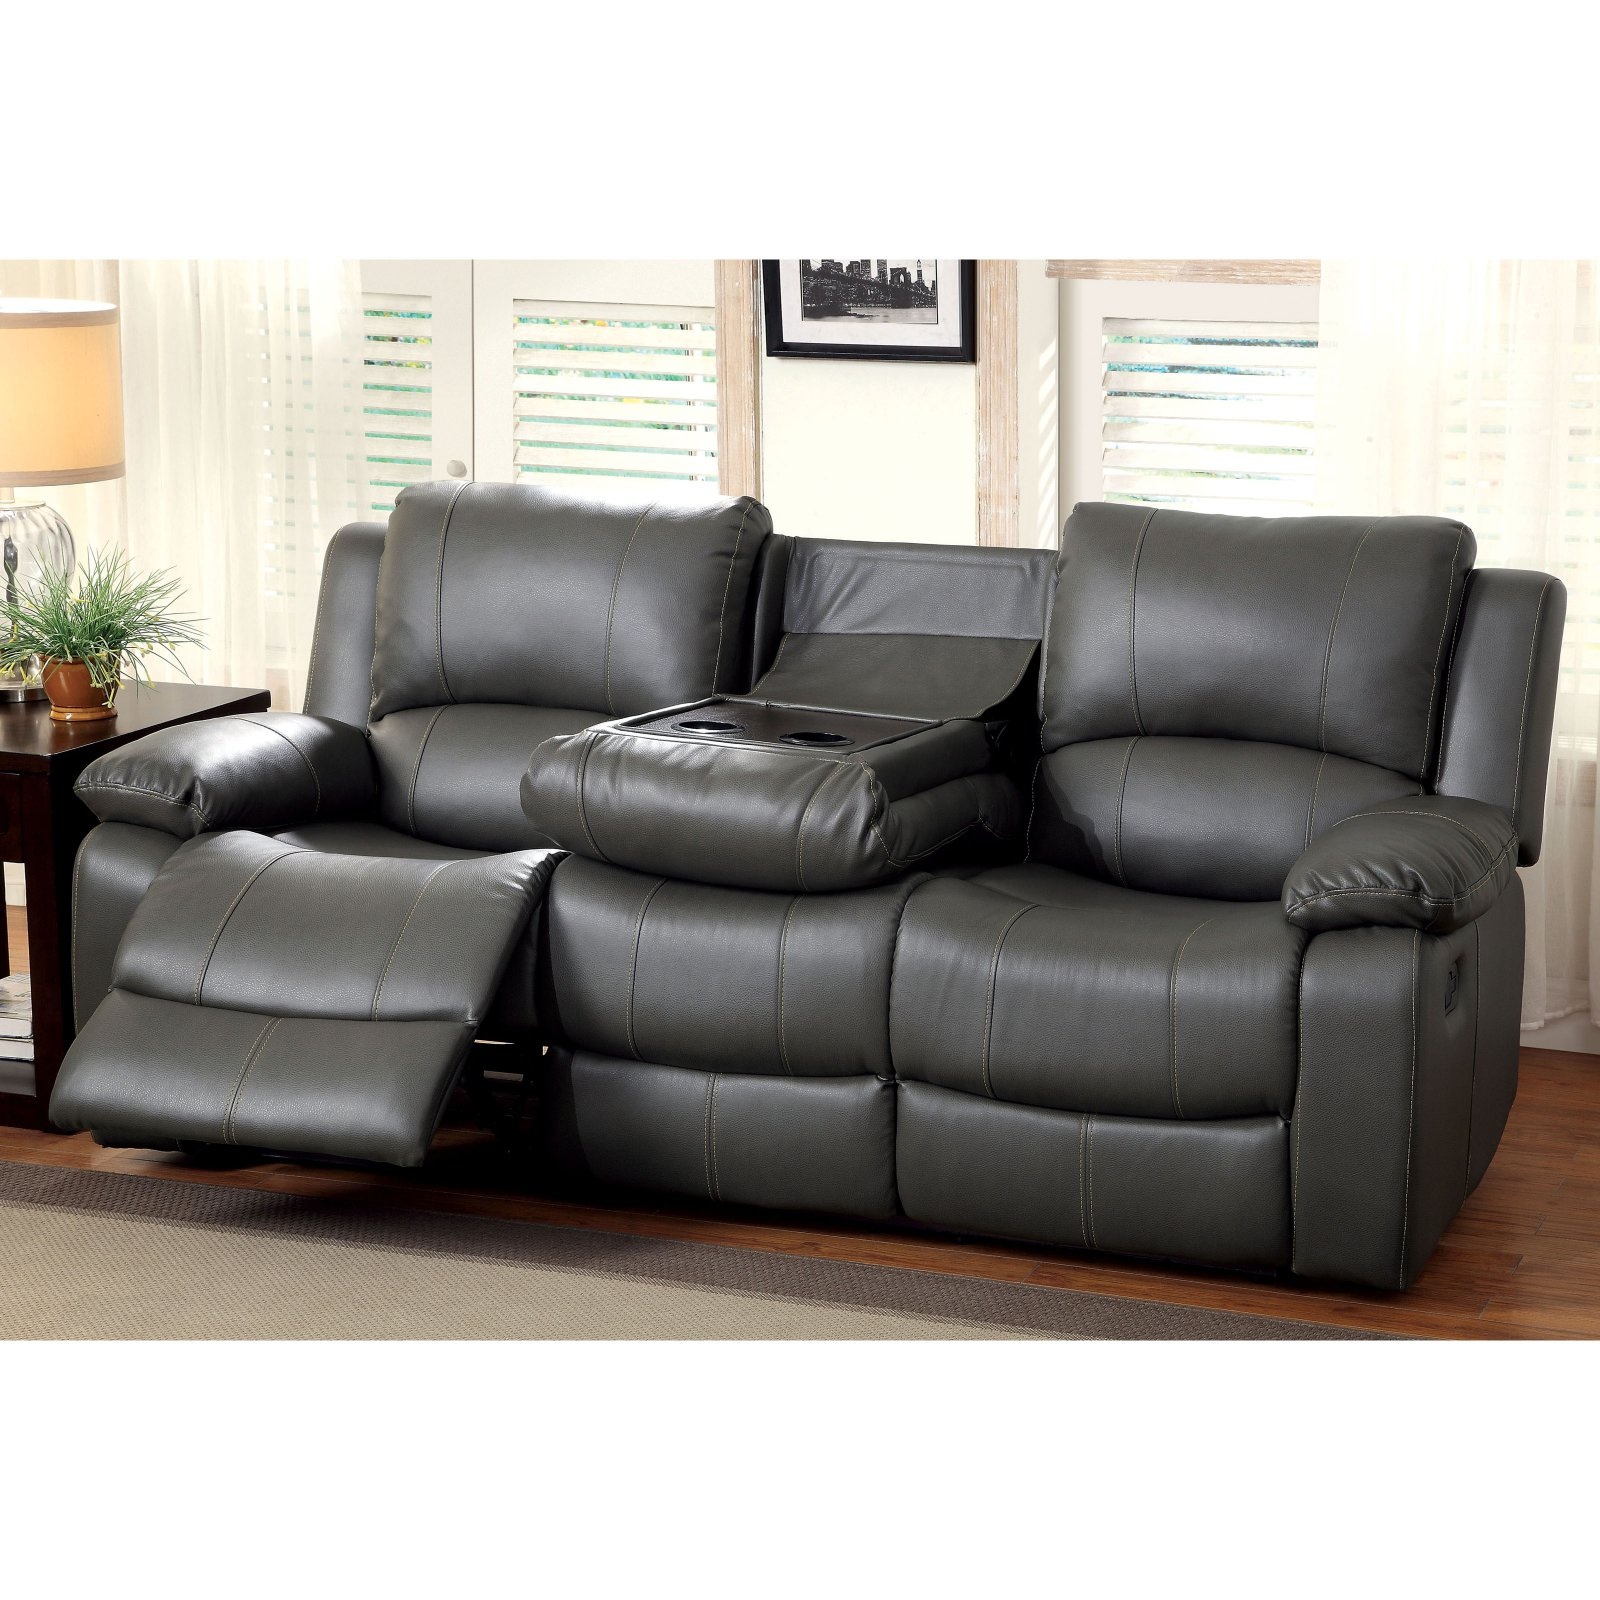 Furniture of America Rathbone Recliner Sofa with Cup Holders